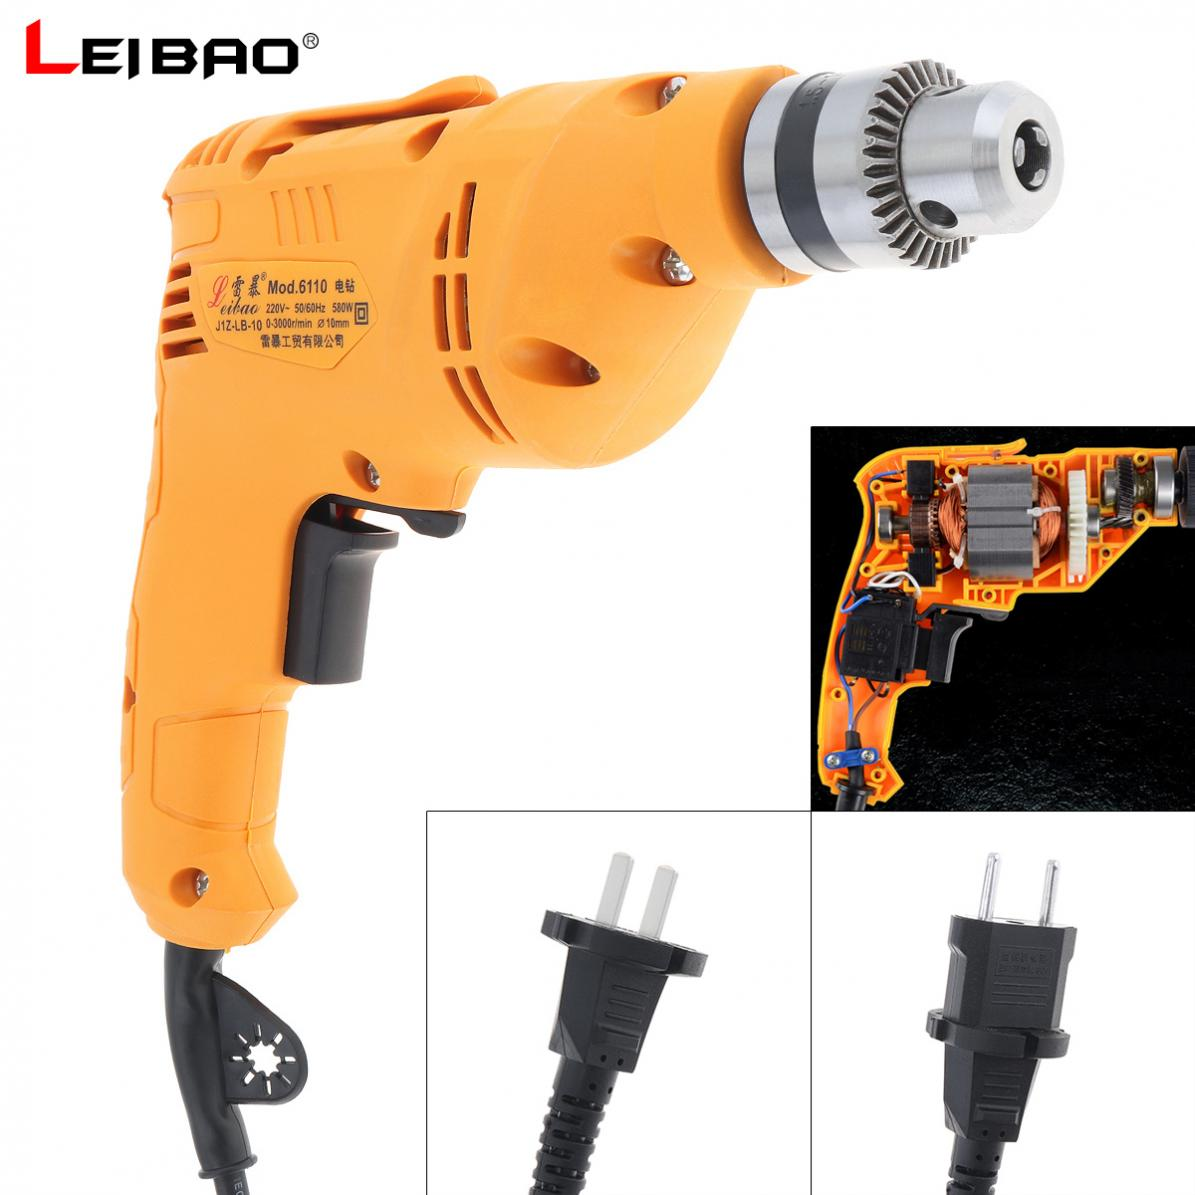 220V 580W Handheld Impact Electric Pistol Drill with Rotation Adjustment Switch and 10mm Drill Chuck for Punching / Polishing image